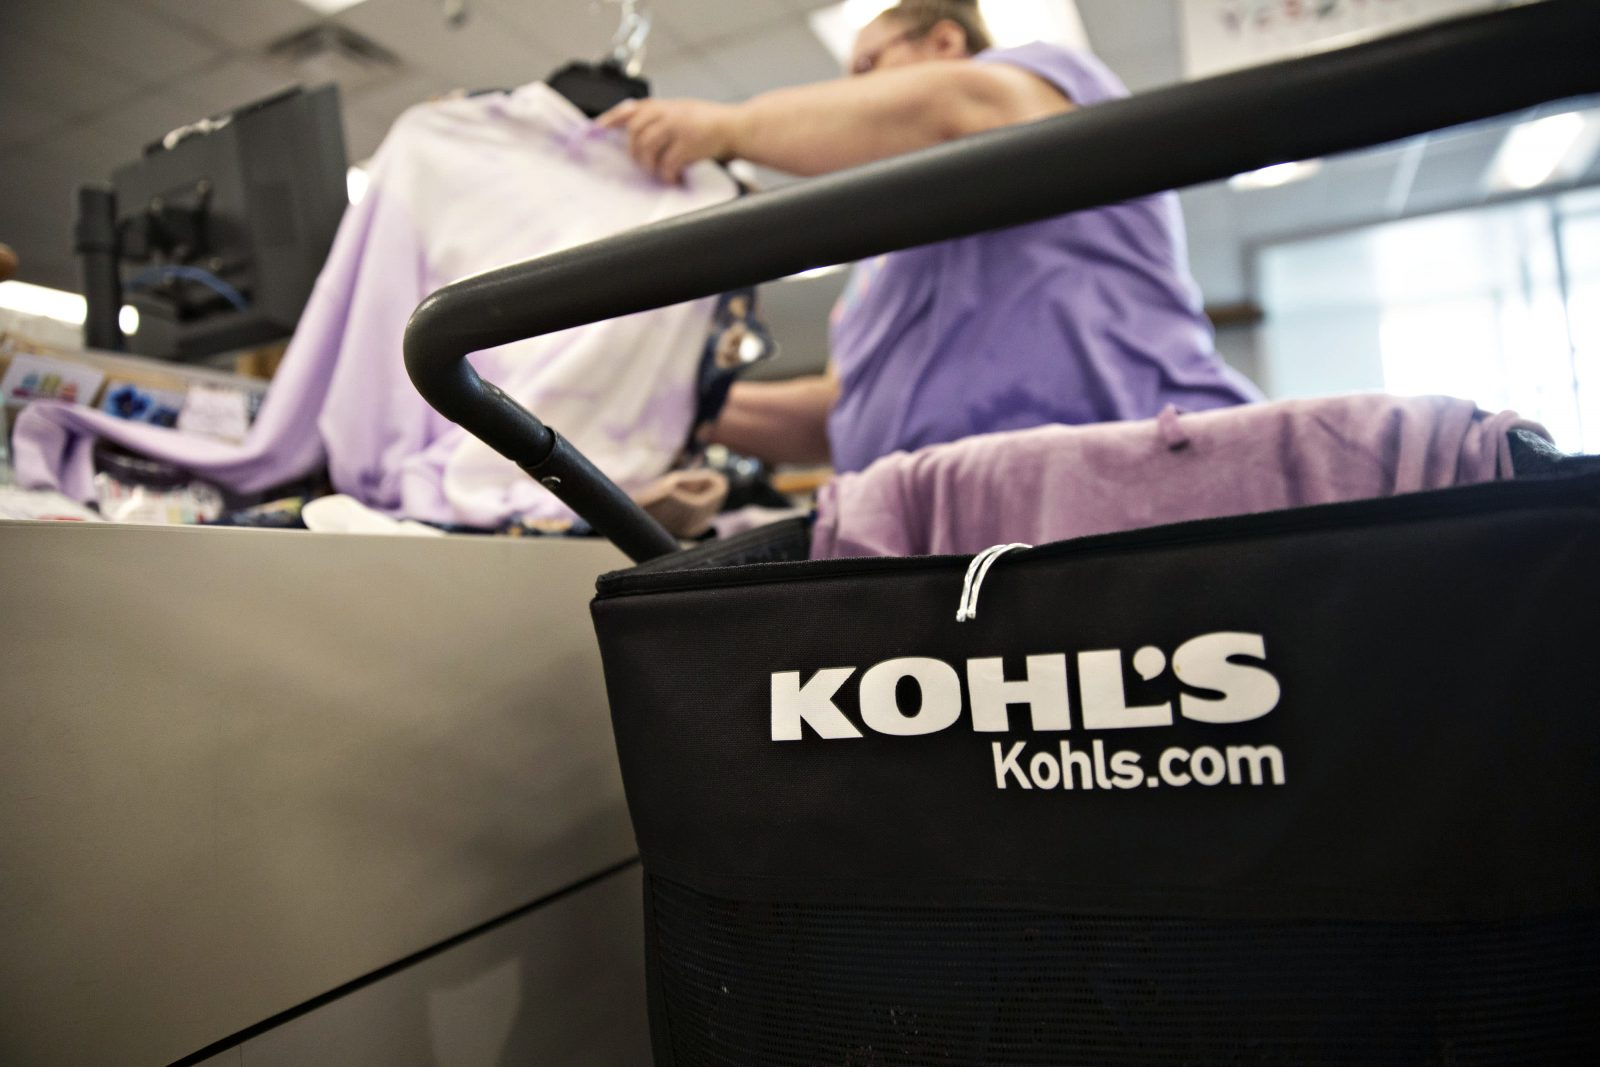 Retailers such as Kohl's 'in trouble' without better digital presence or bargains, Cramer says